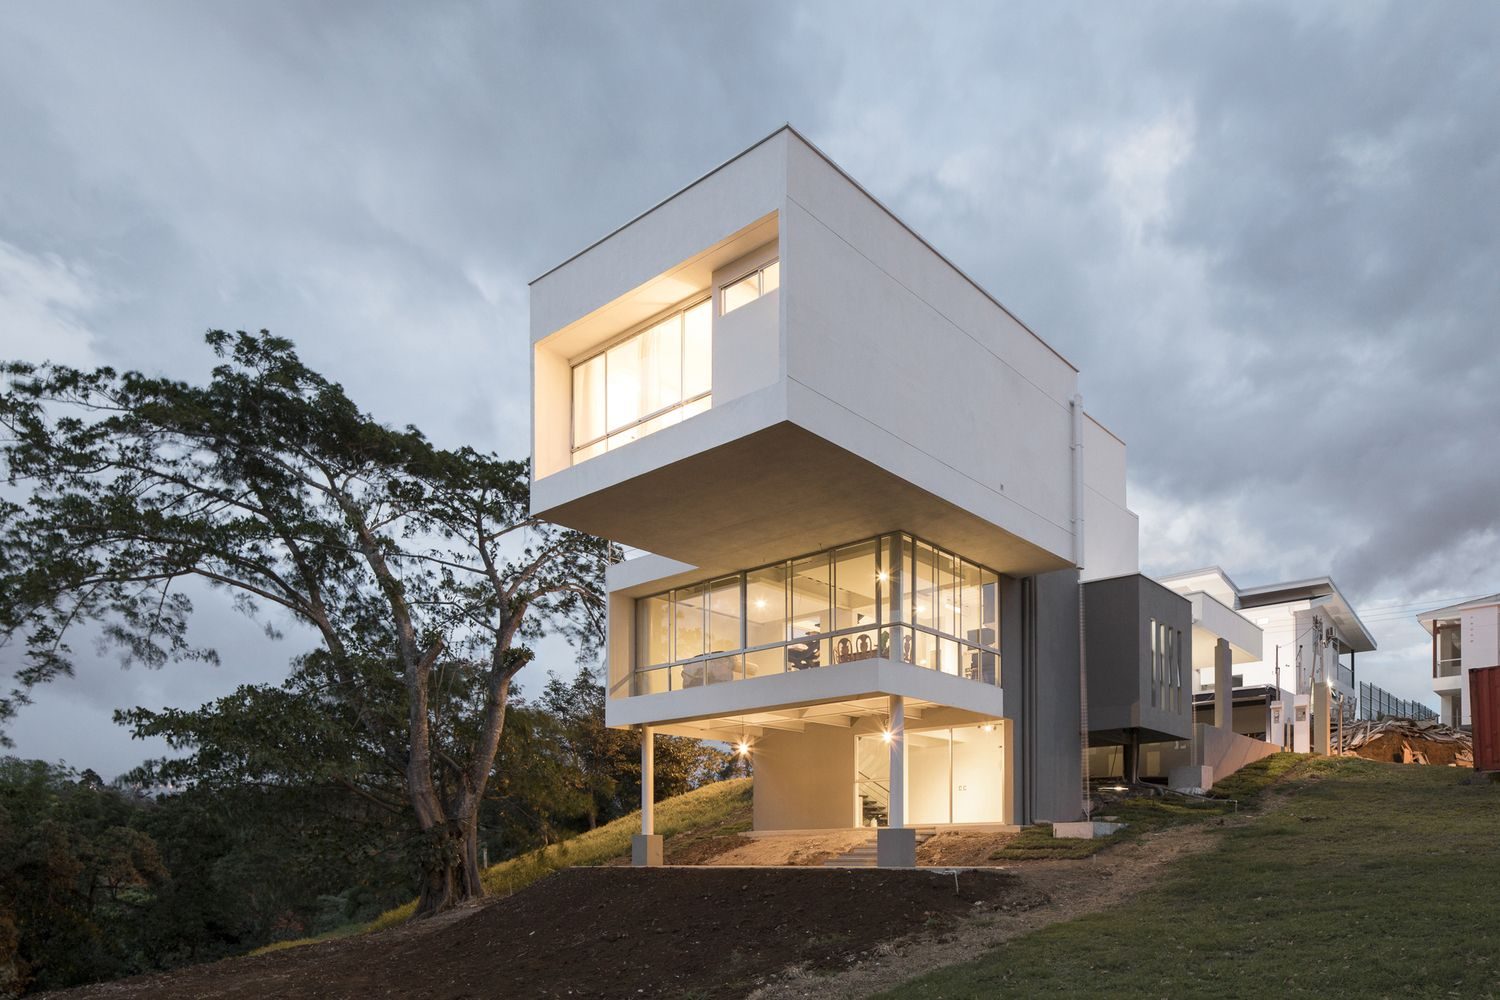 Gallery of PS House / JM arquitectura 1 Architect